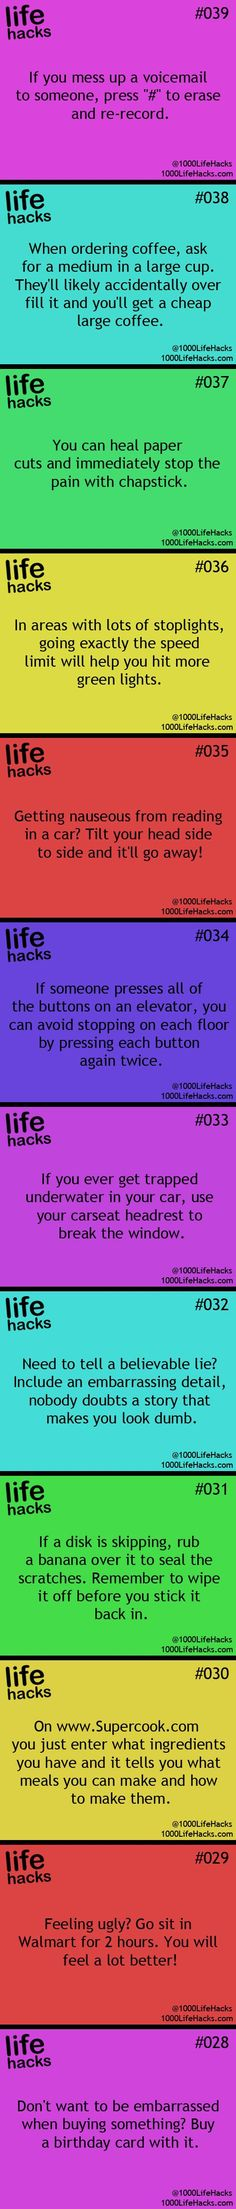 Useful life hacks :)